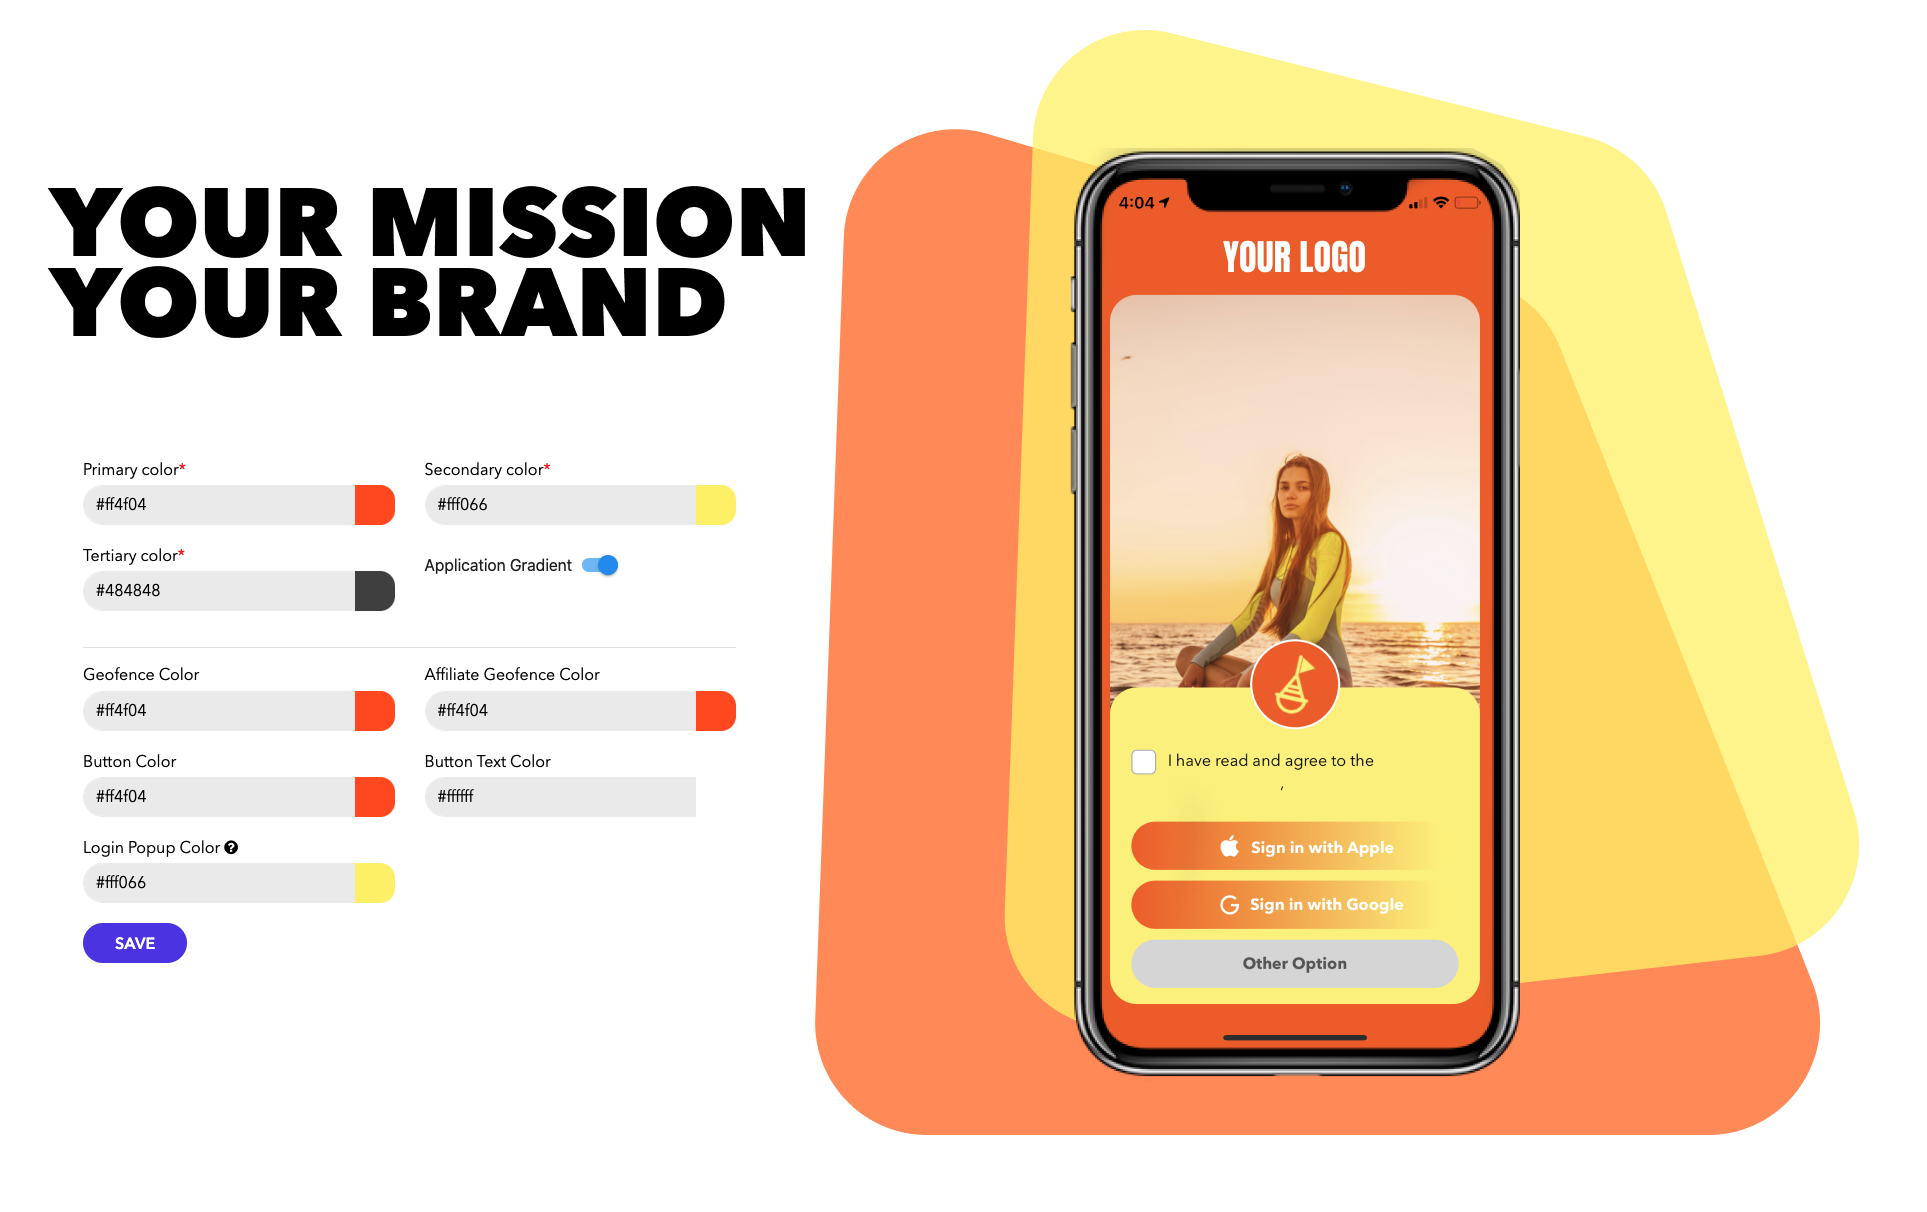 Your Mission - Your Brand